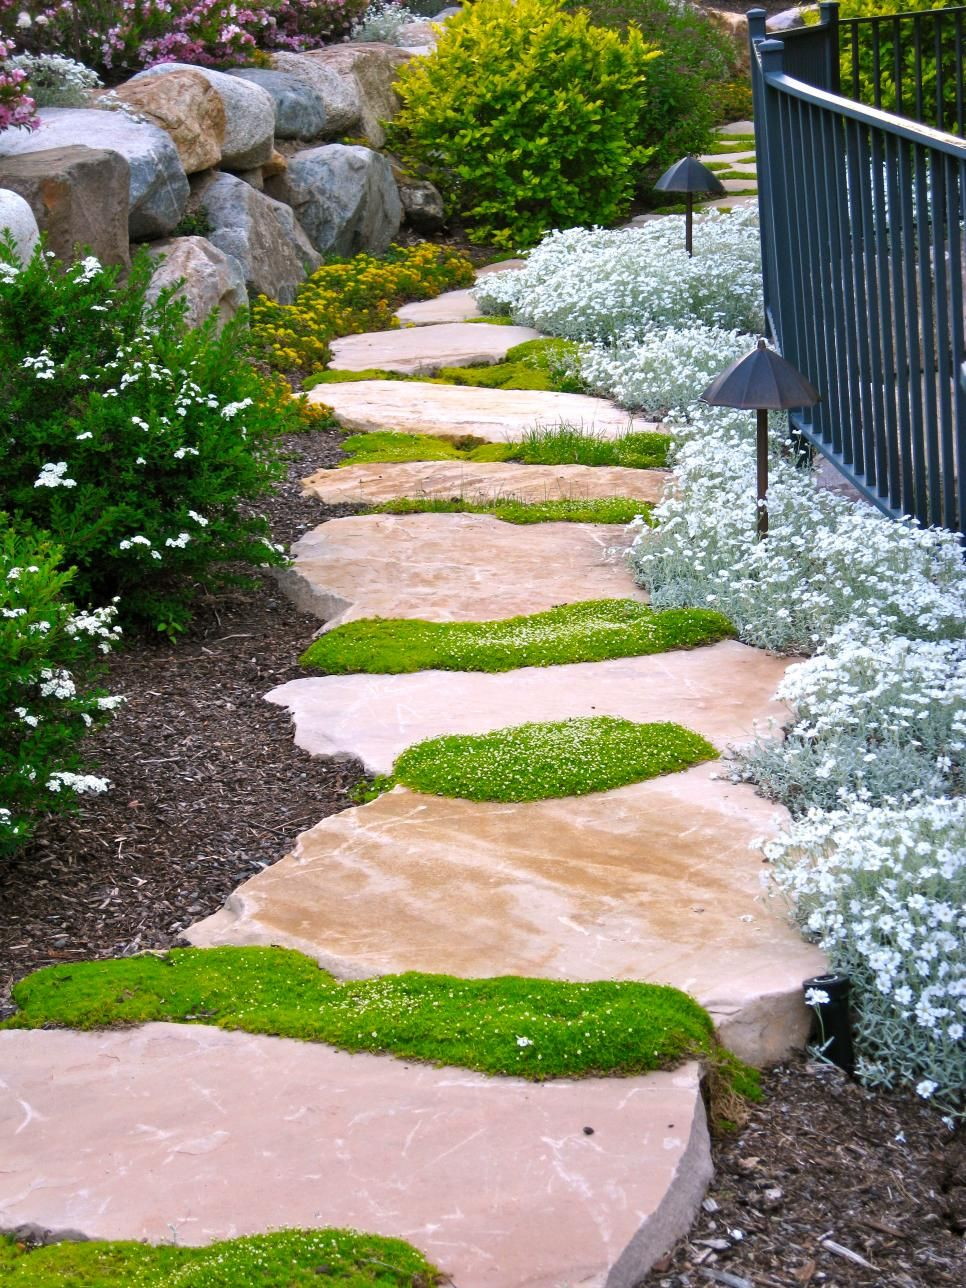 Check Out These 12 Great Ideas For Walkways In Your Garden